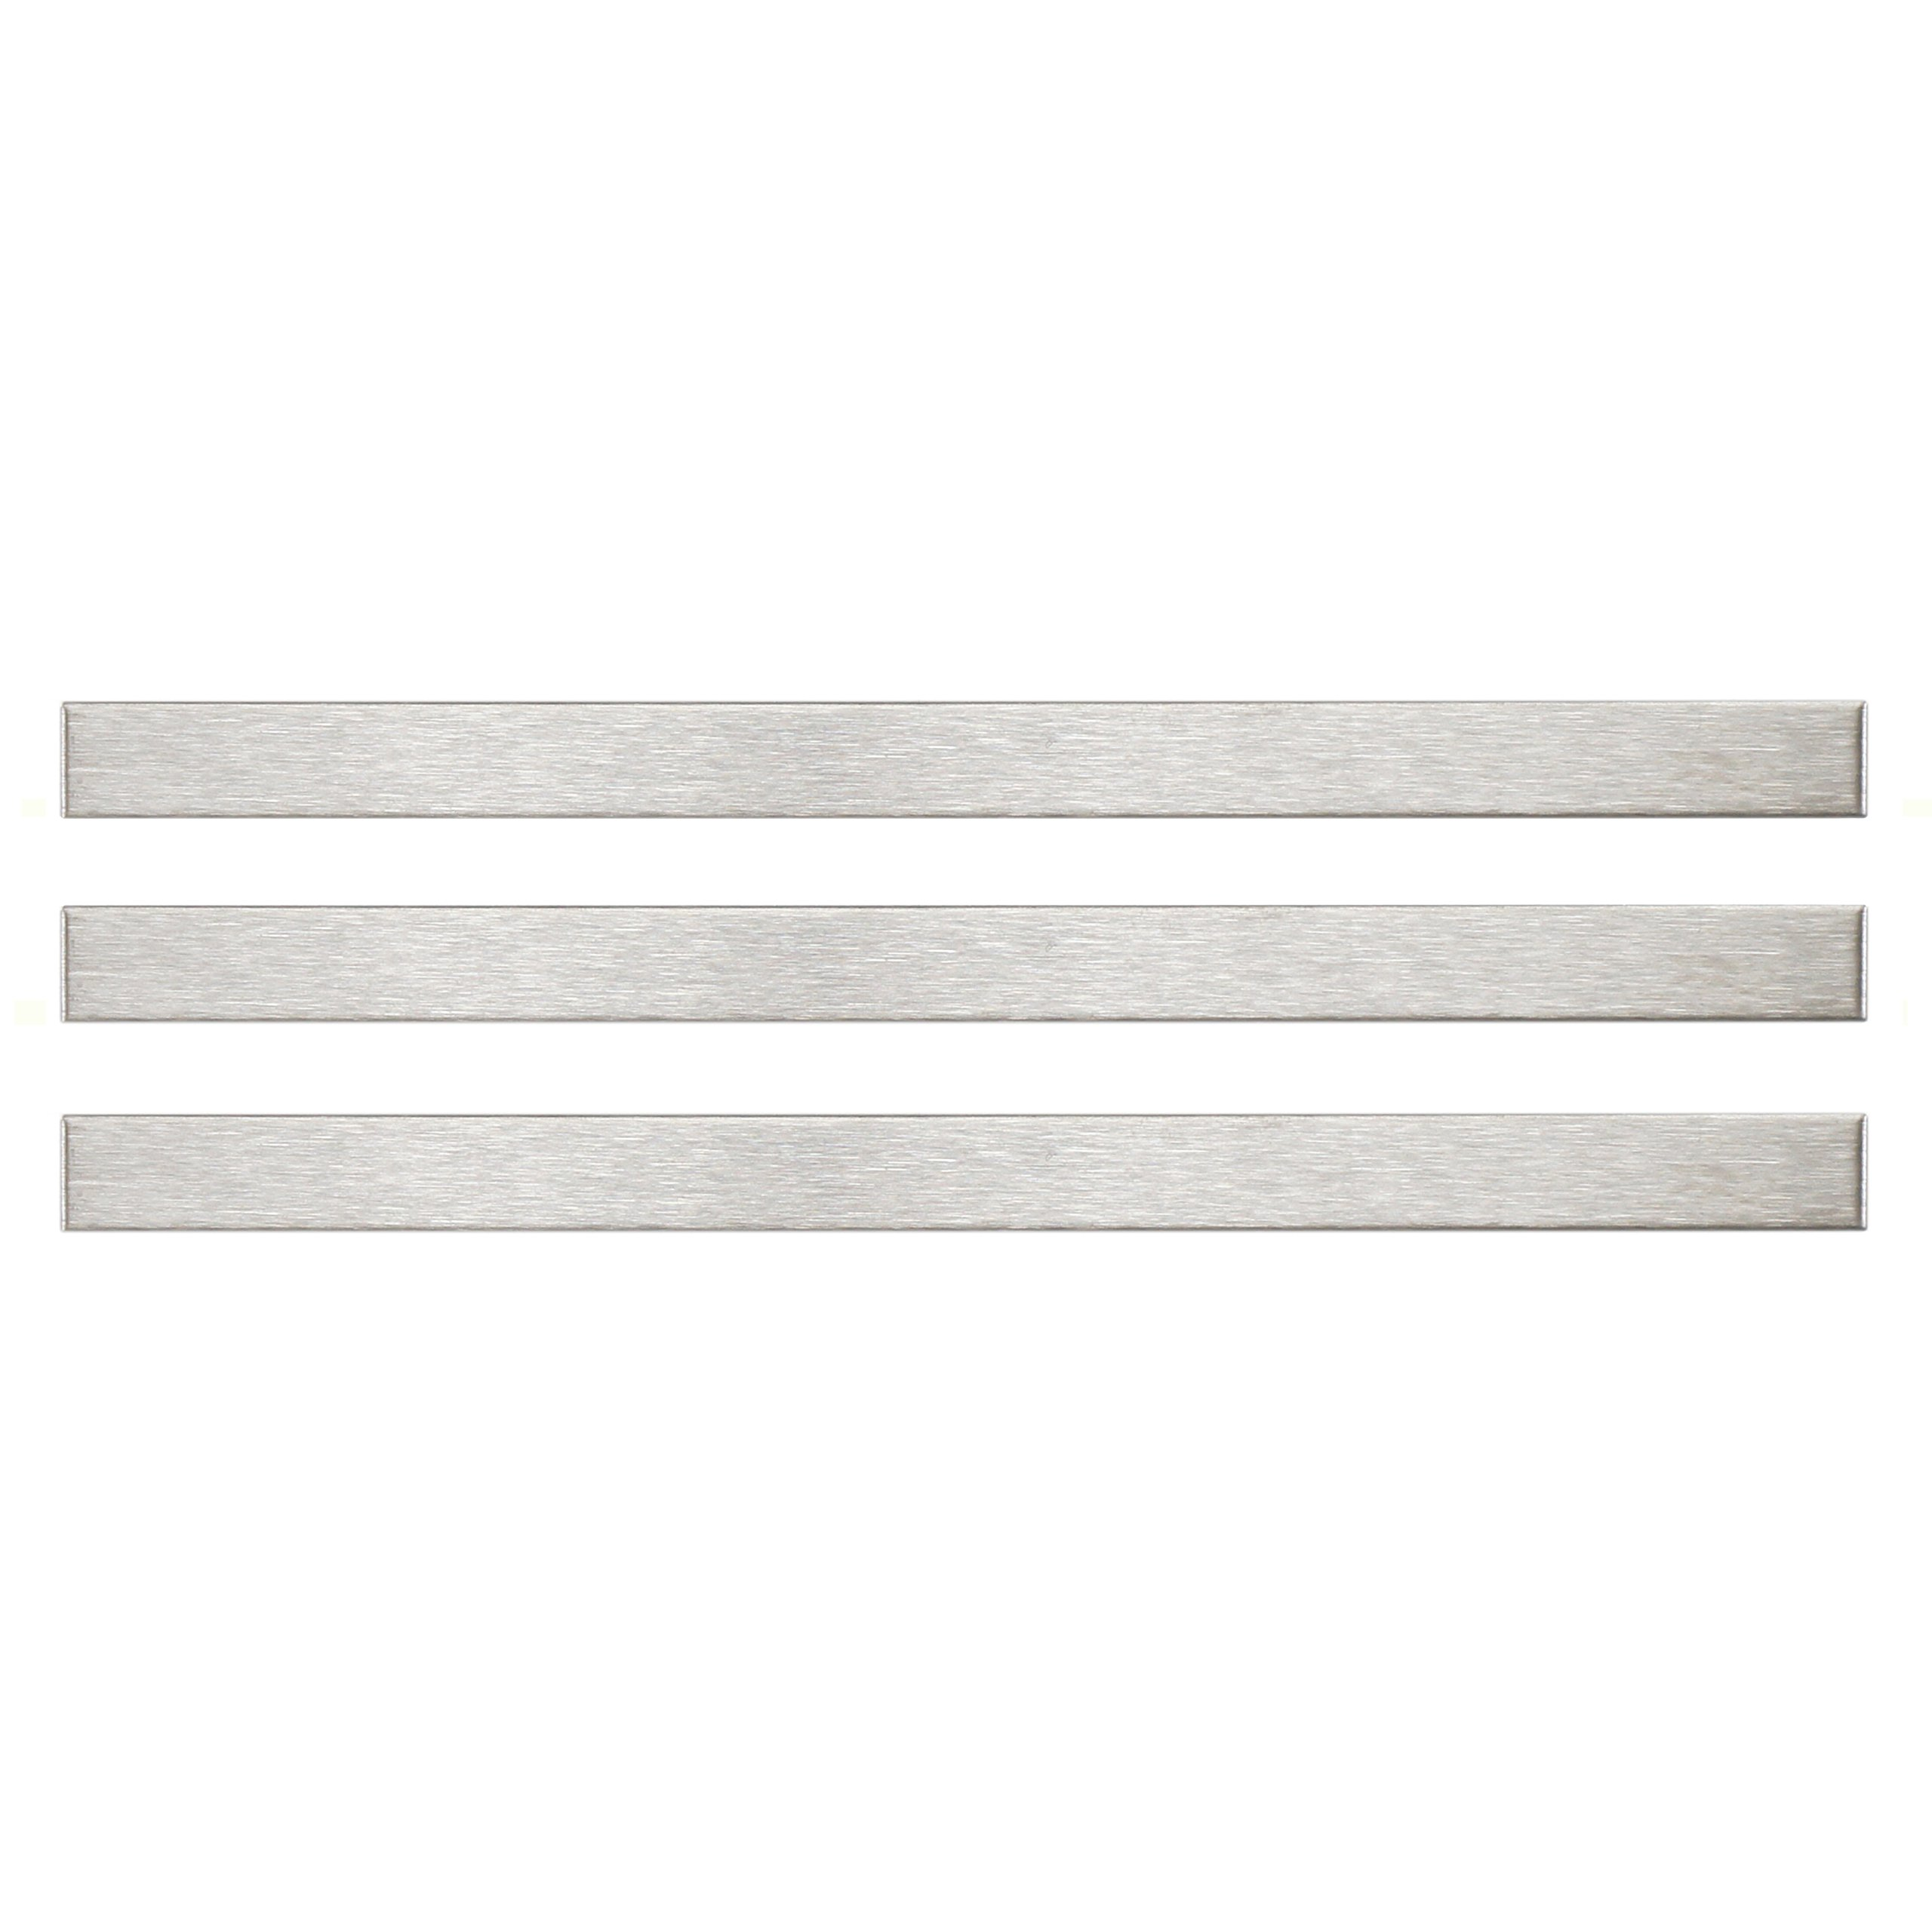 Allia Stick 3/8 x 5 3/4 Inch Stainless Steel Over Porcelain Wall Trim Tile (3 Pcs, .3 Sq. Ft. Per Case)